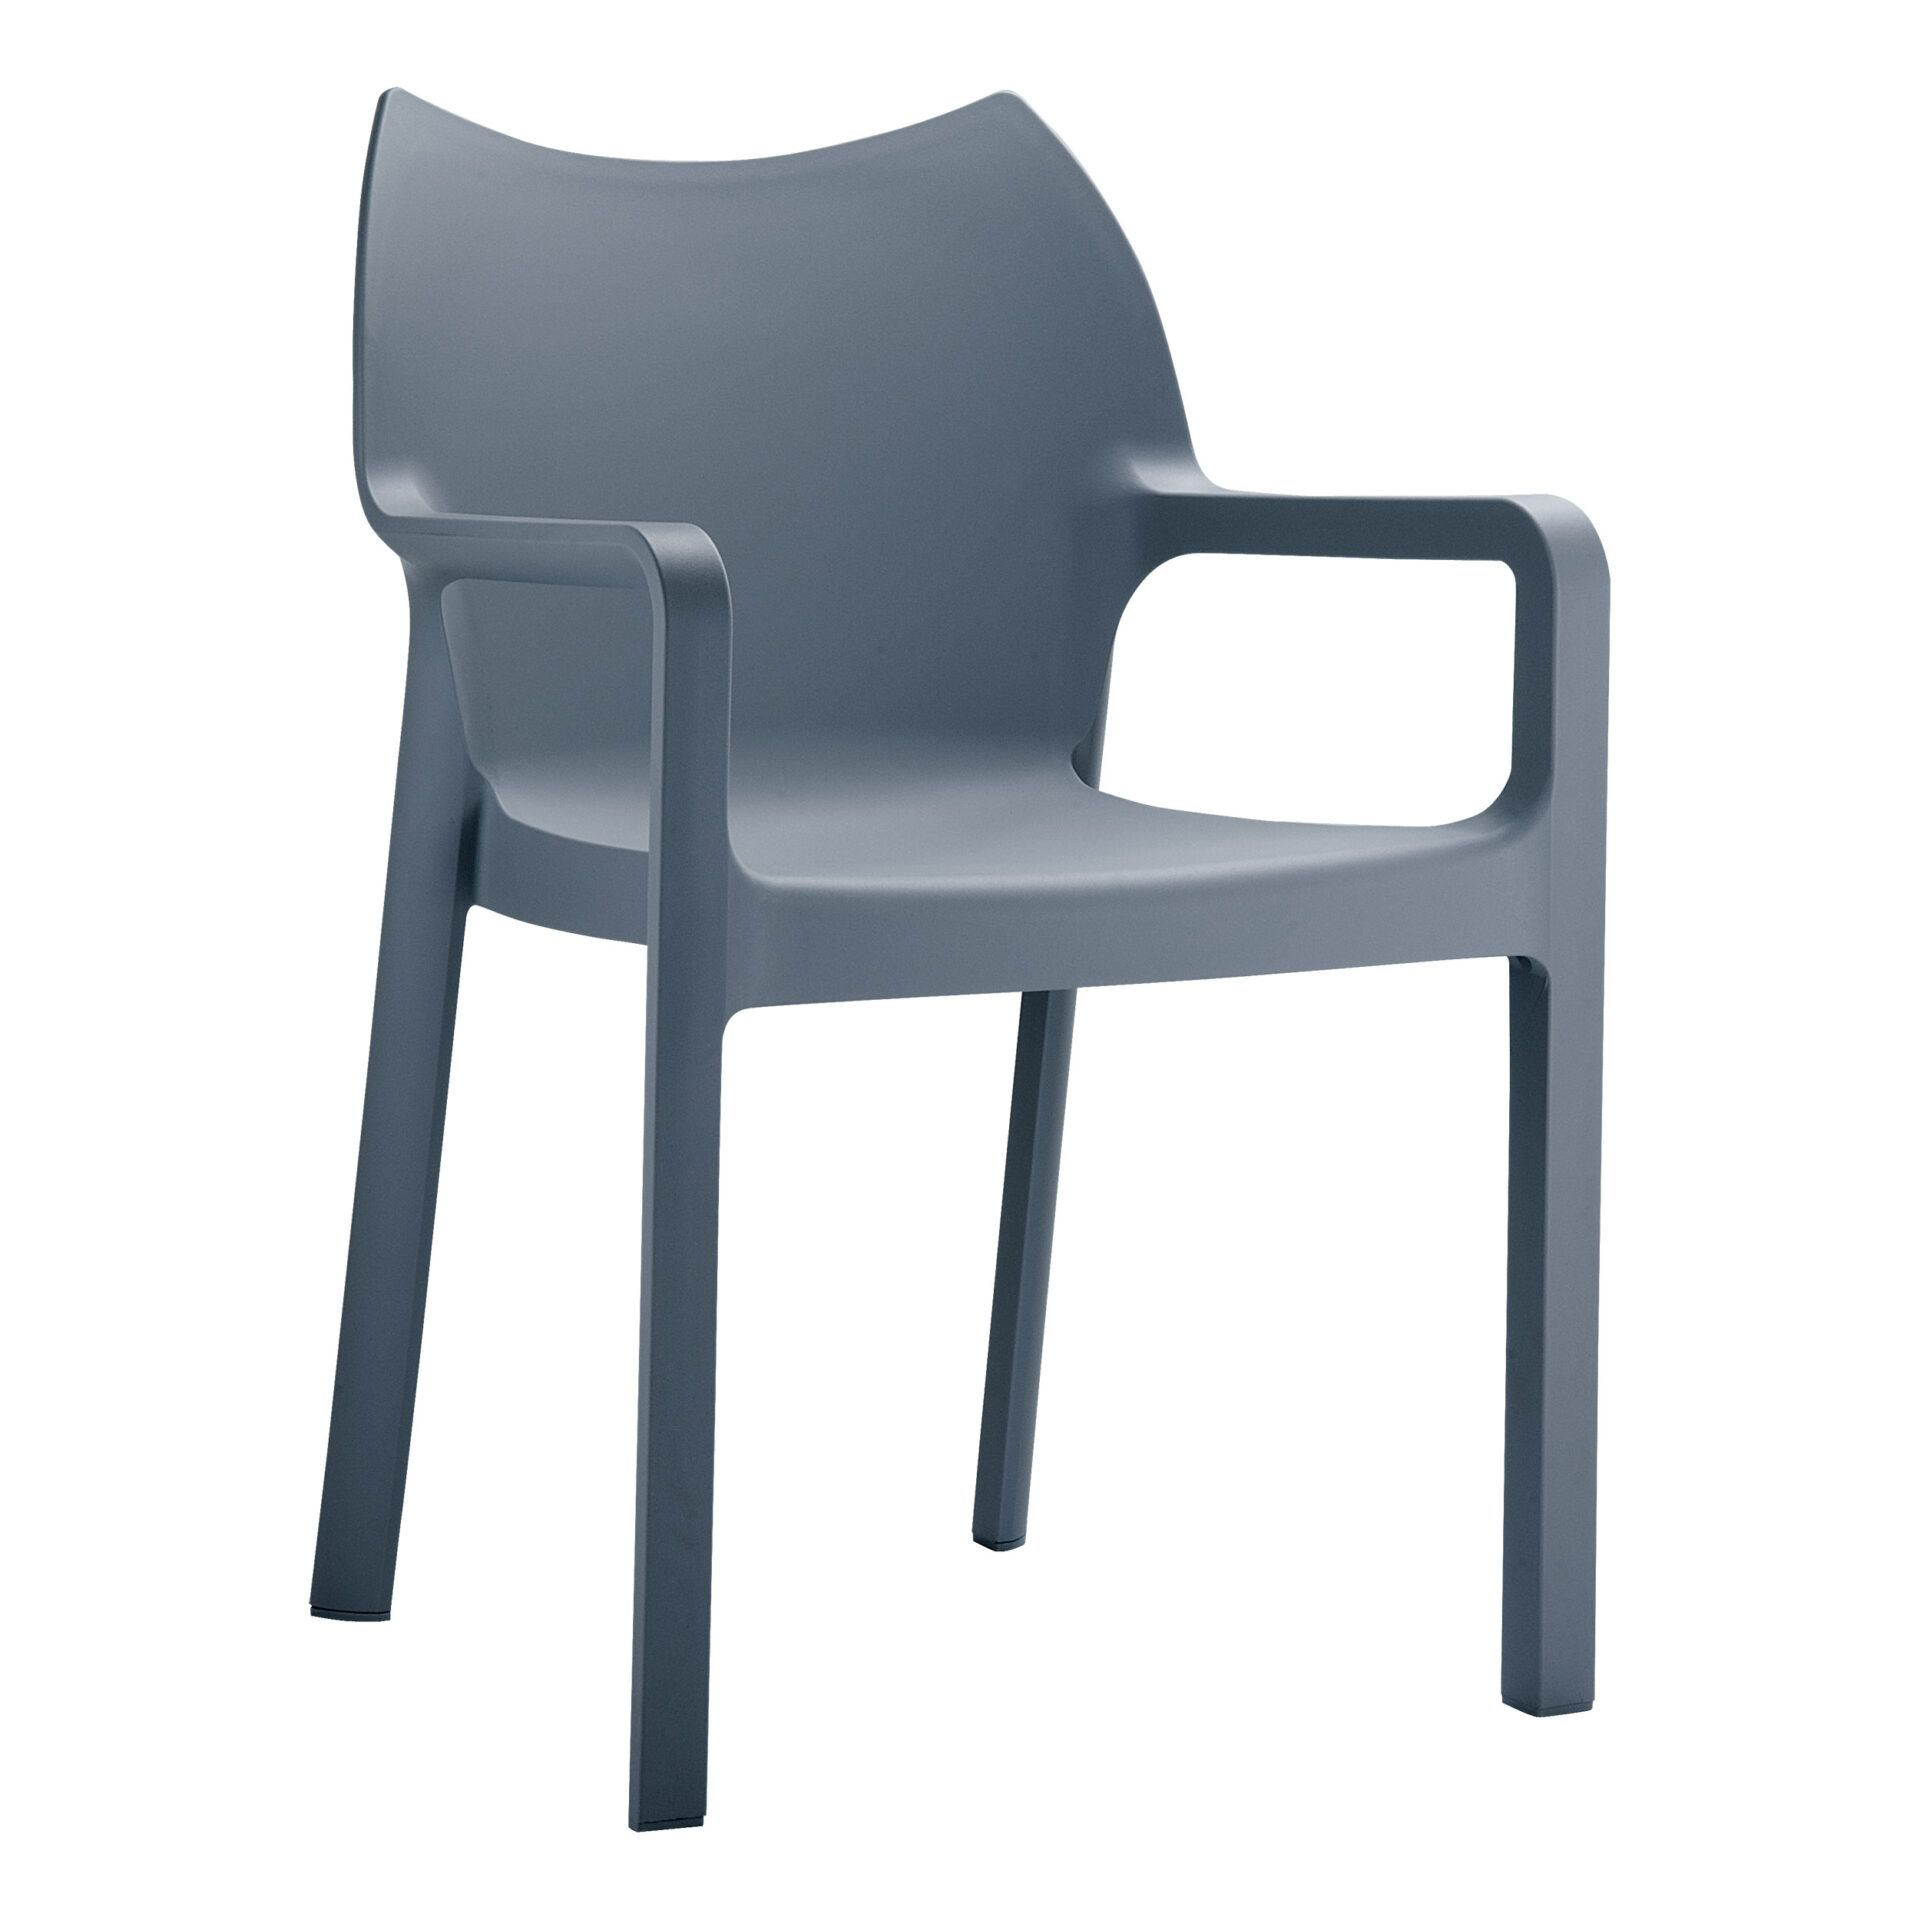 outdoor plastic seating diva chair dark grey front side